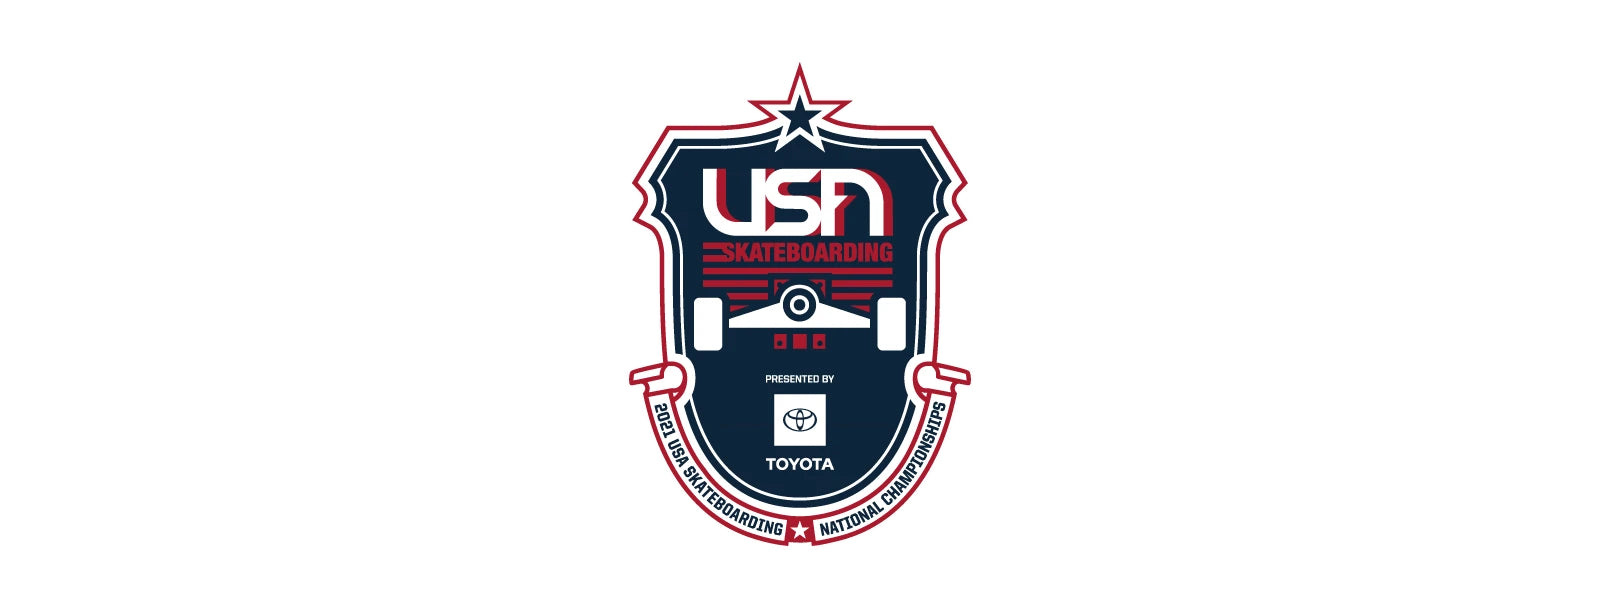 Quarterfinals Results: 2021 USA Skateboarding National Championships presented by Toyota